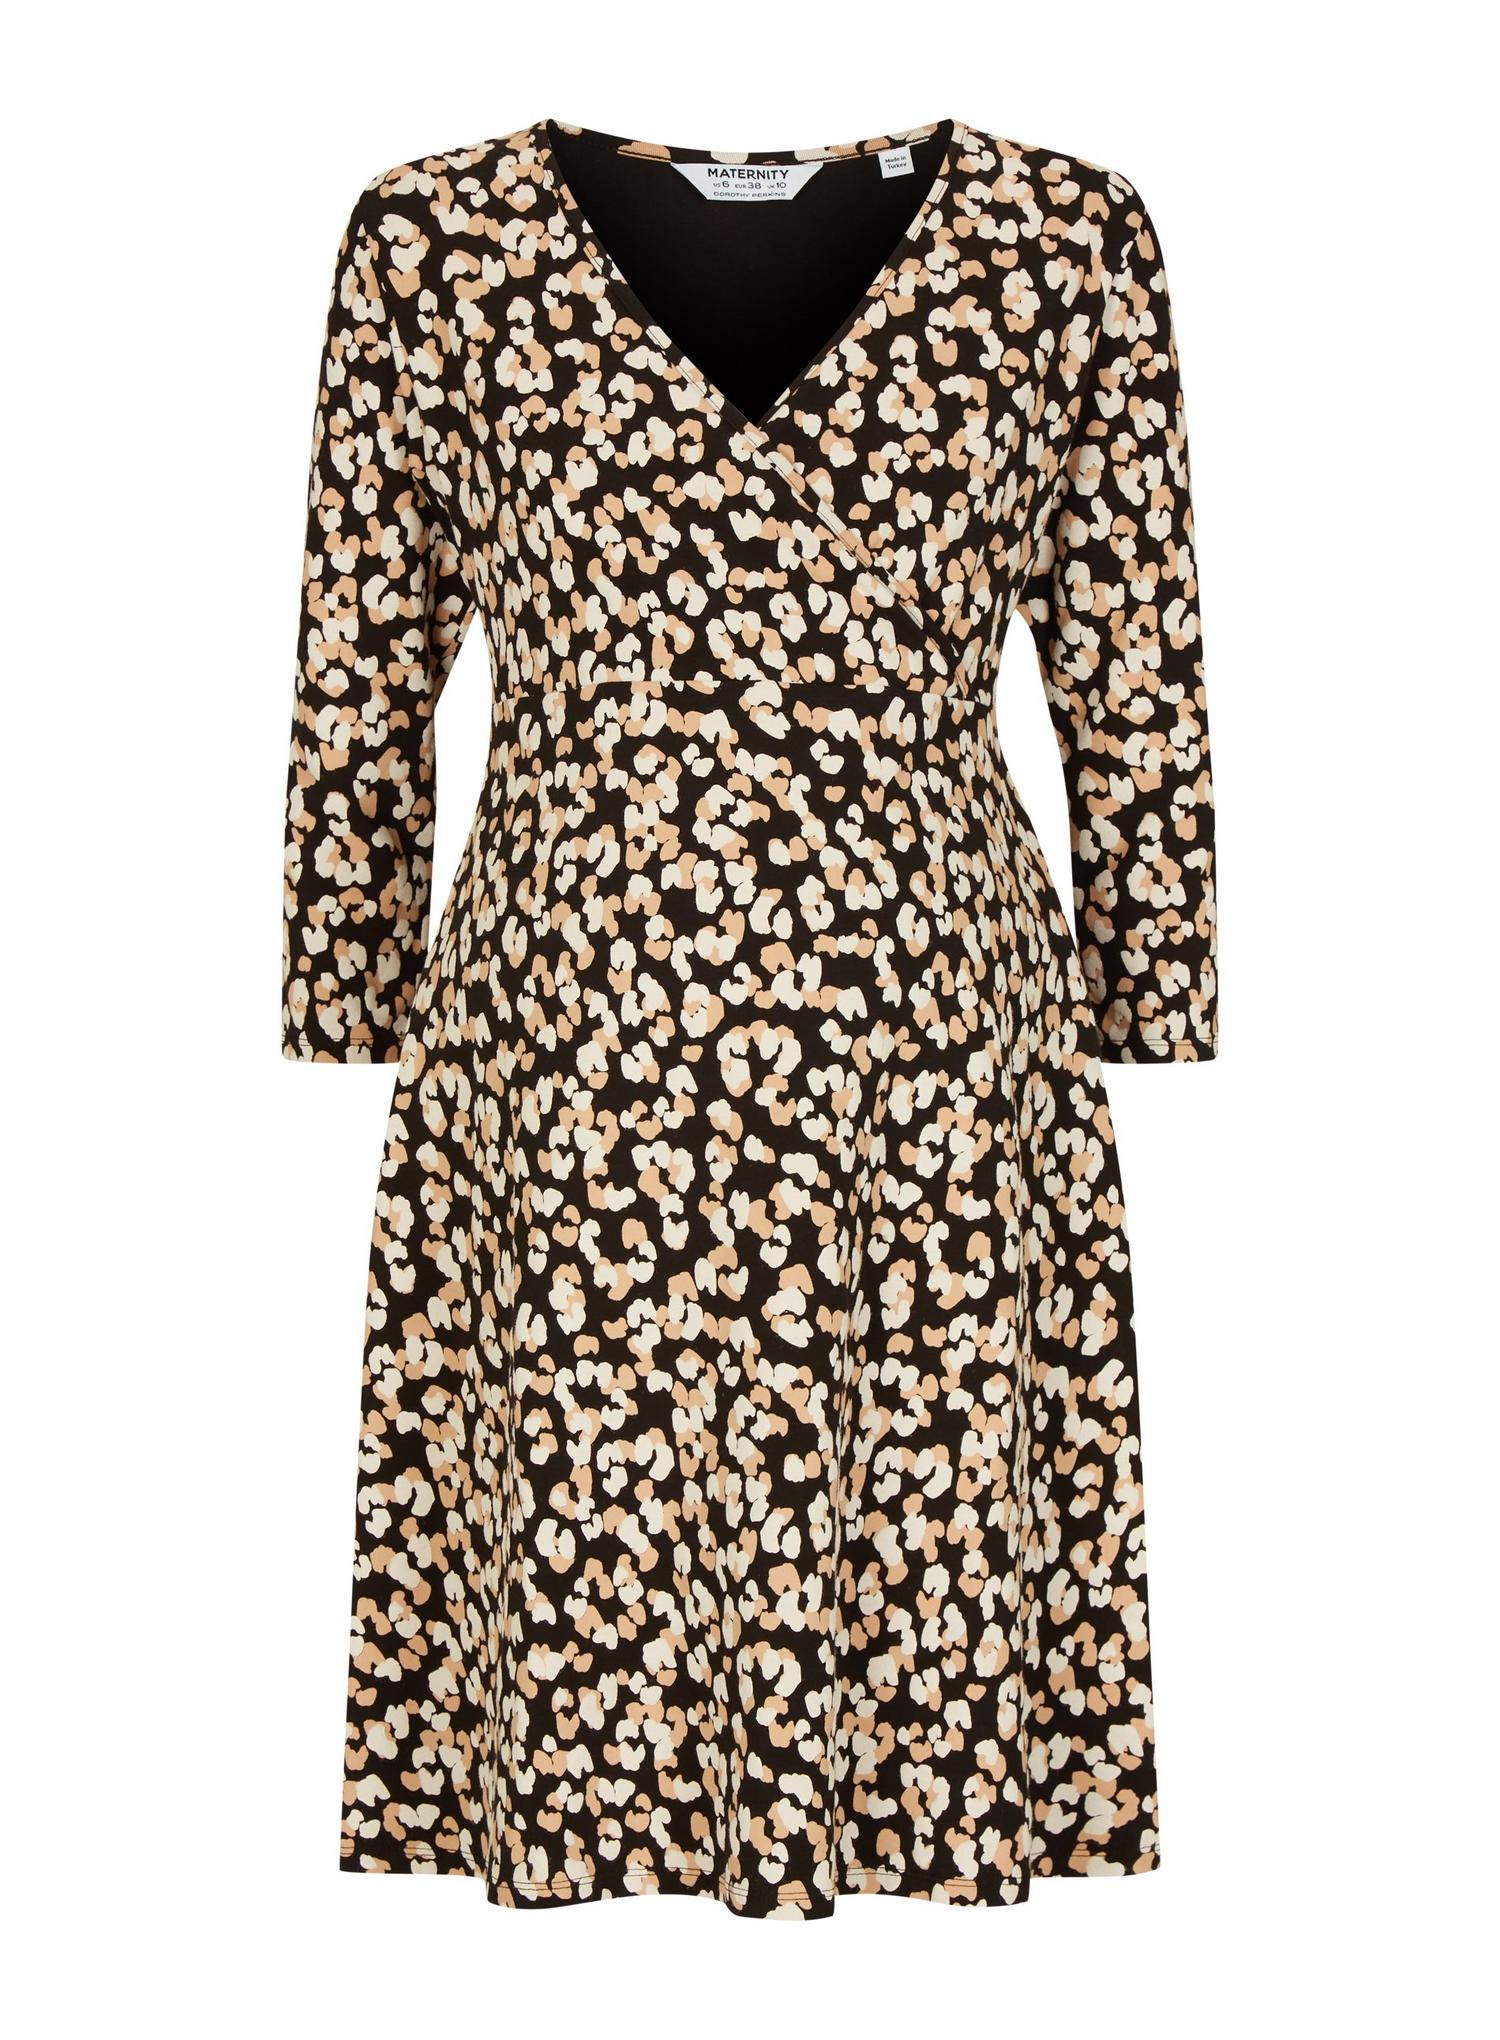 105 Maternity Leopard Wrap Dress image number 2